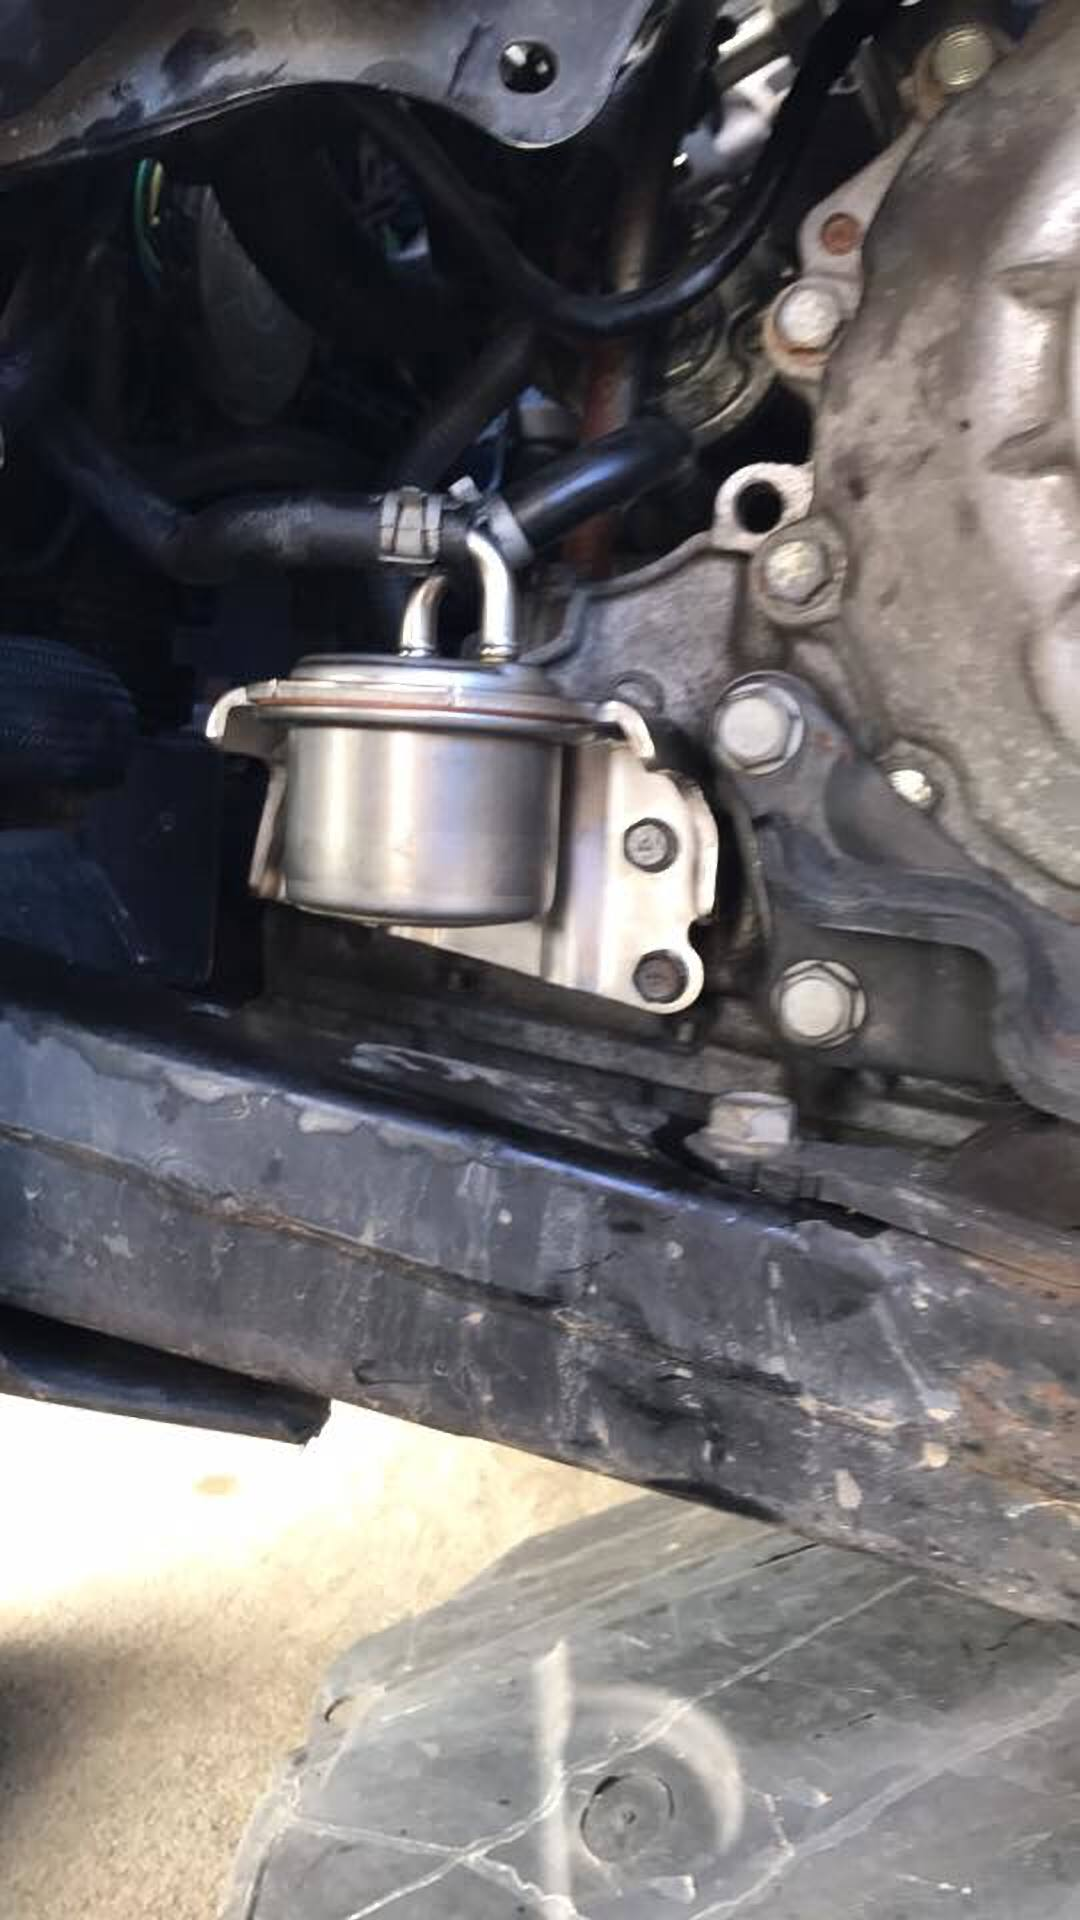 How to Change the CVT Transmission Oil Filter on 7thgen Maxima